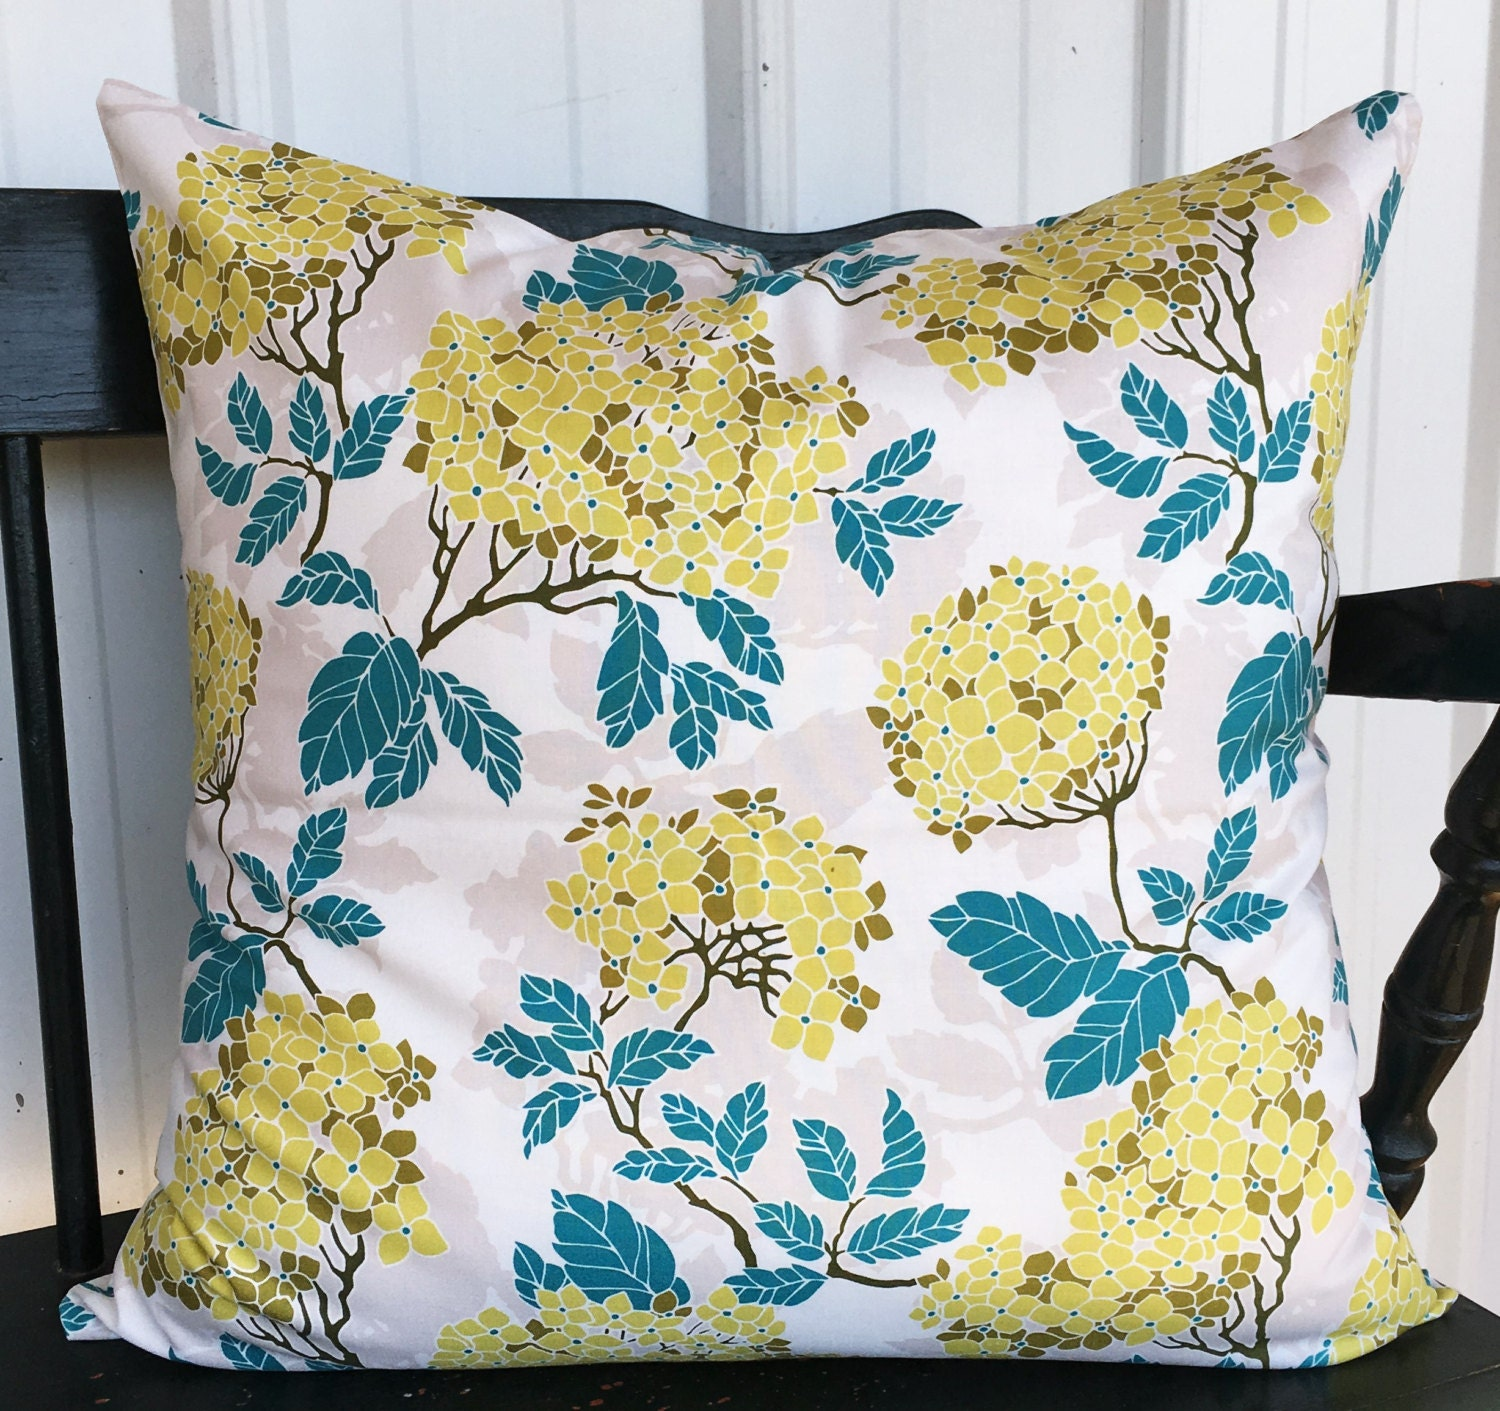 Pillow cover 20x20 Teal Yellow Olive and White Decorative